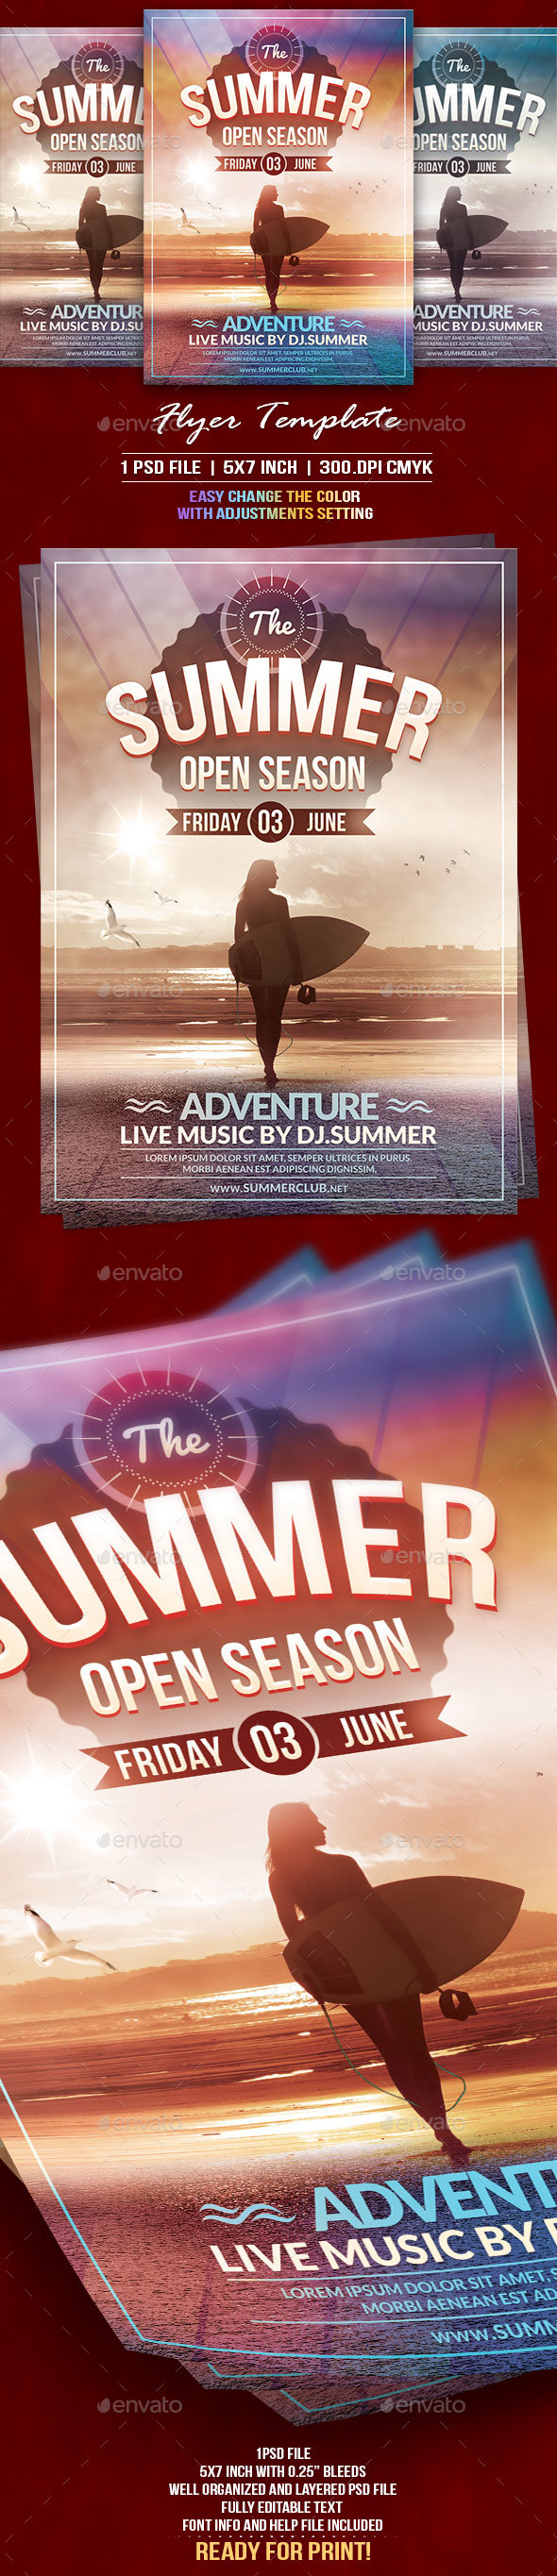 The Summer Flyer Template - Events Flyers